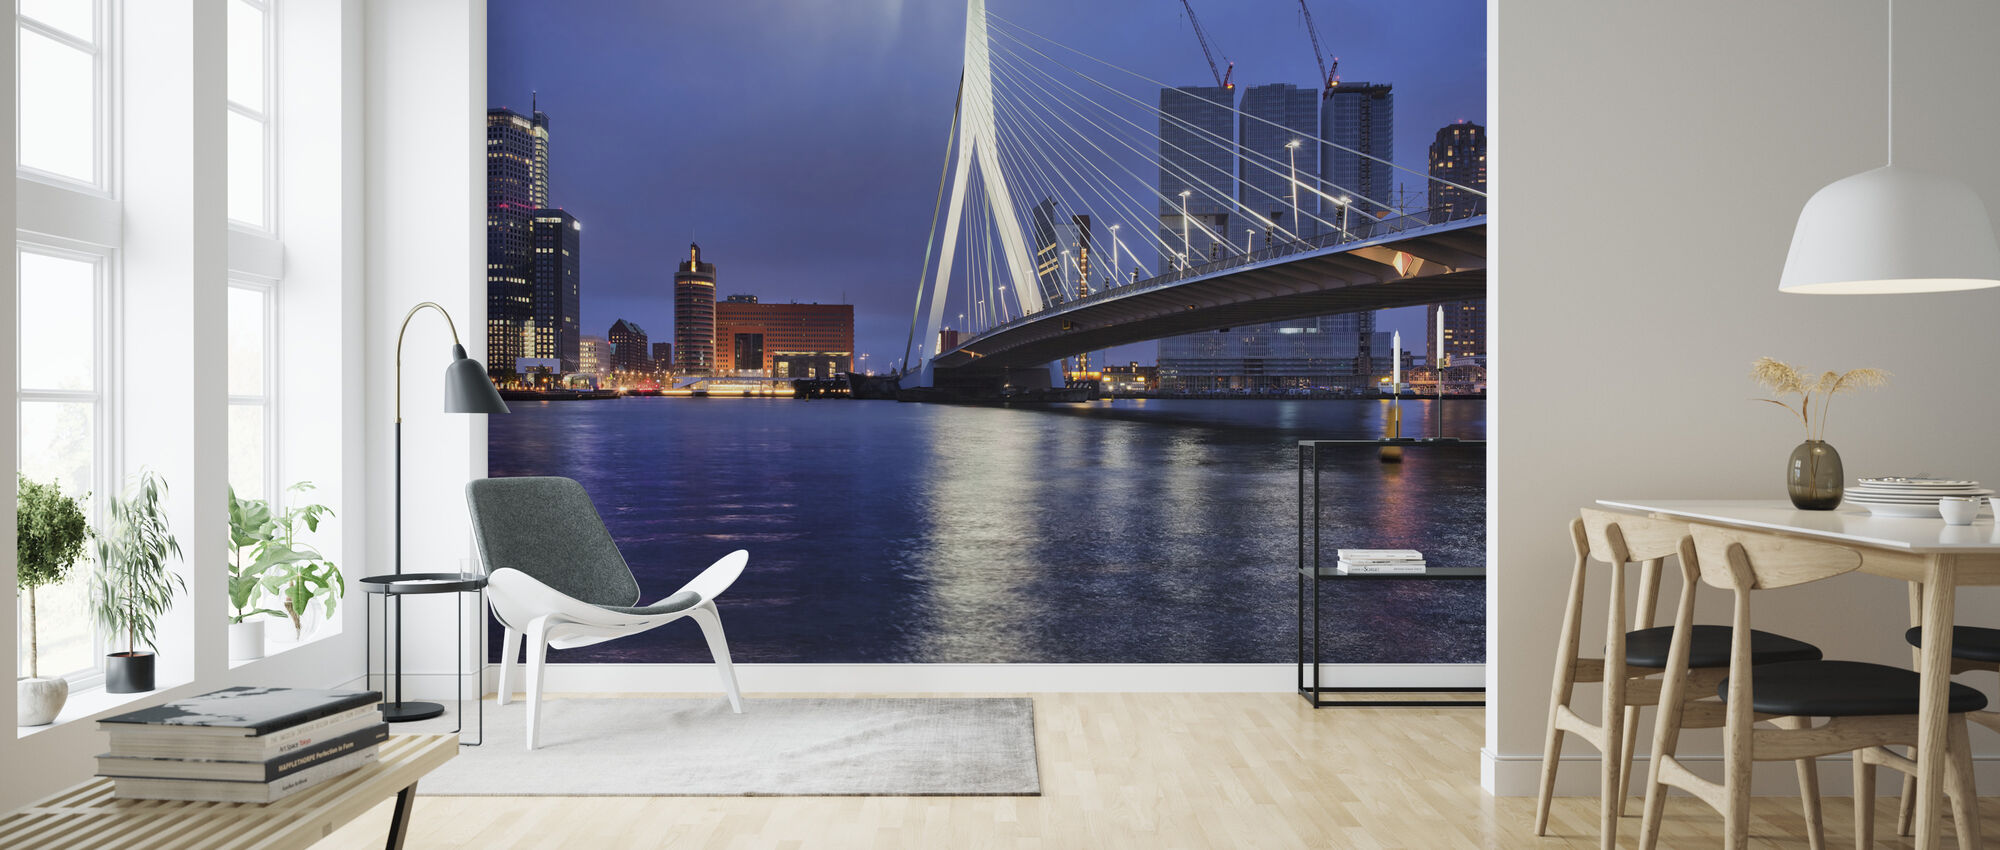 City of Rotterdam at Night - Wallpaper - Living Room